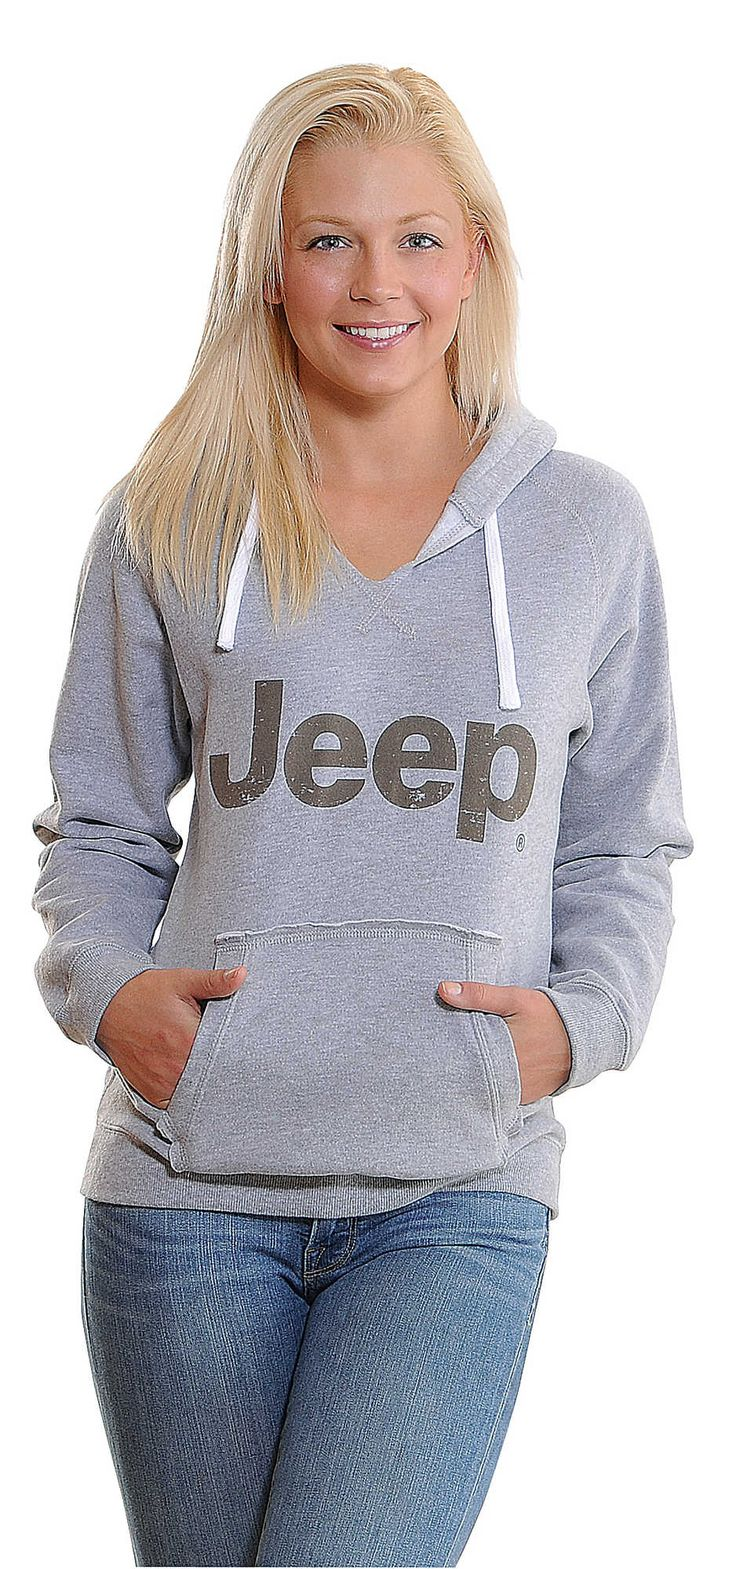 MOPAR Jeep® Woman's Soft Touch Hoodie in Gray | Quadratec